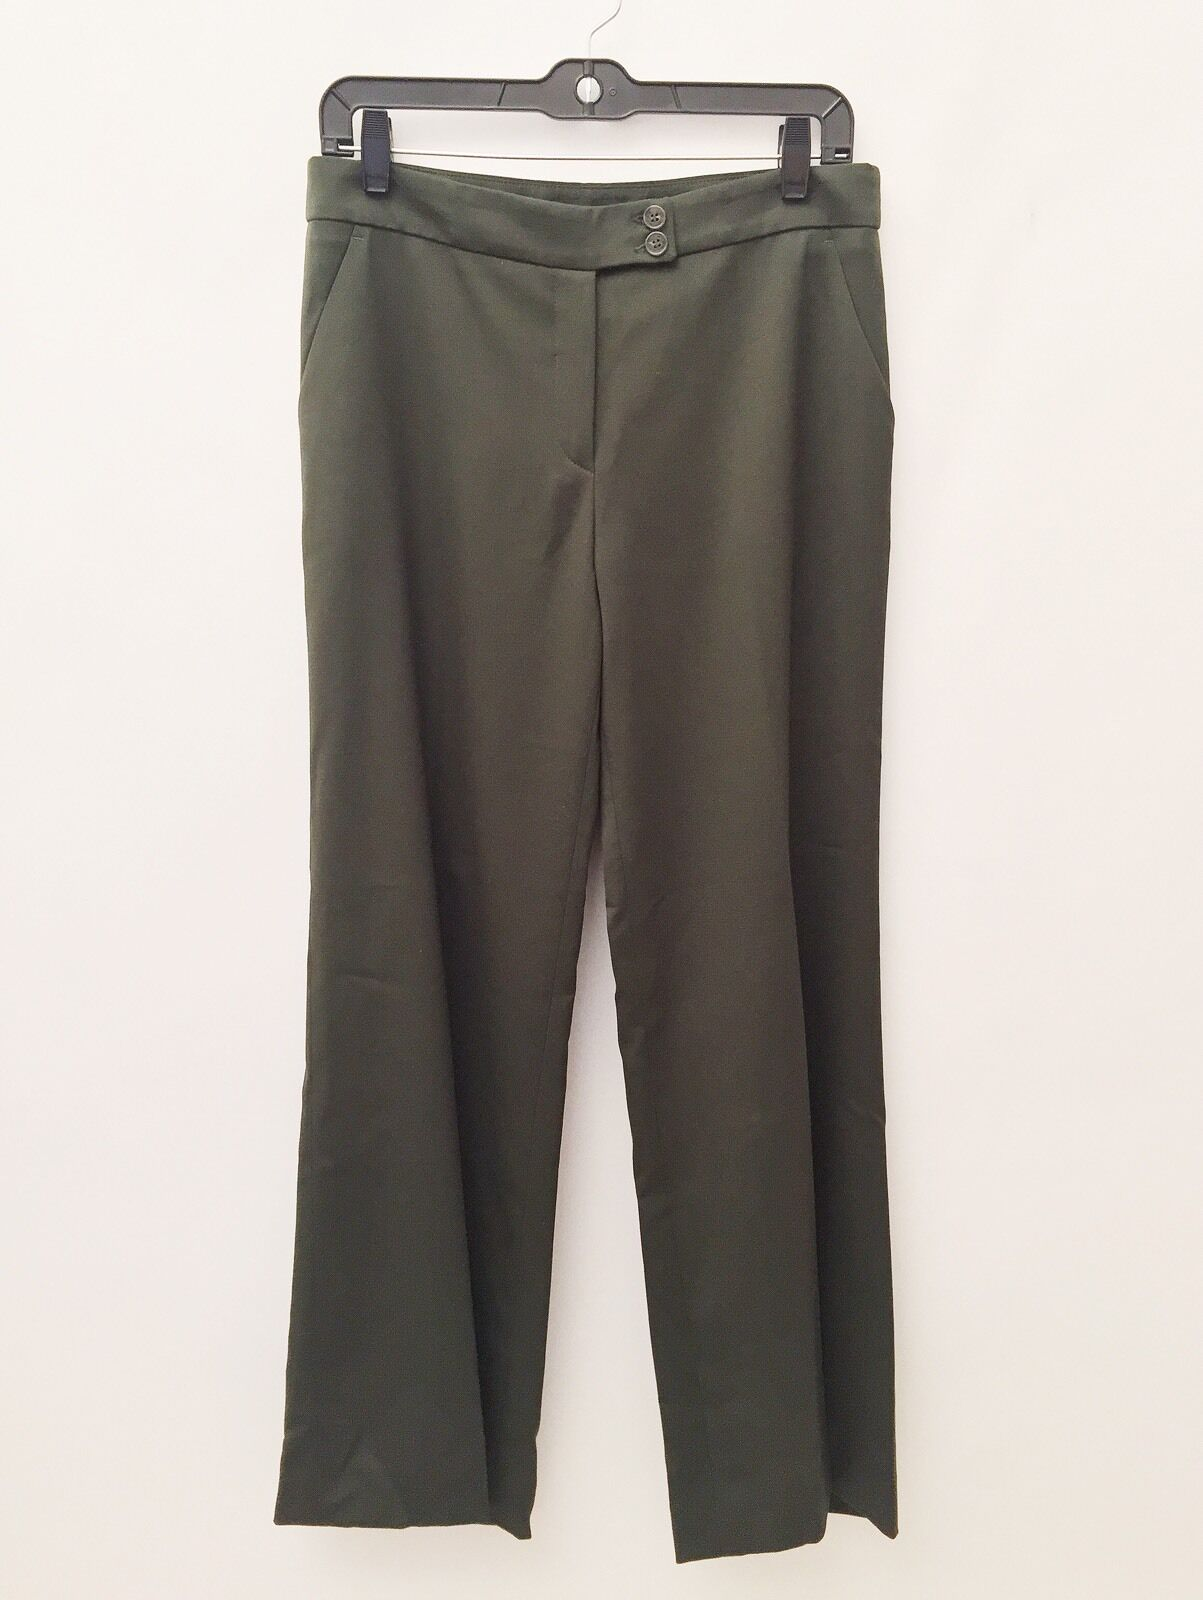 Etro Size 44 Ladies Dark Green Pants